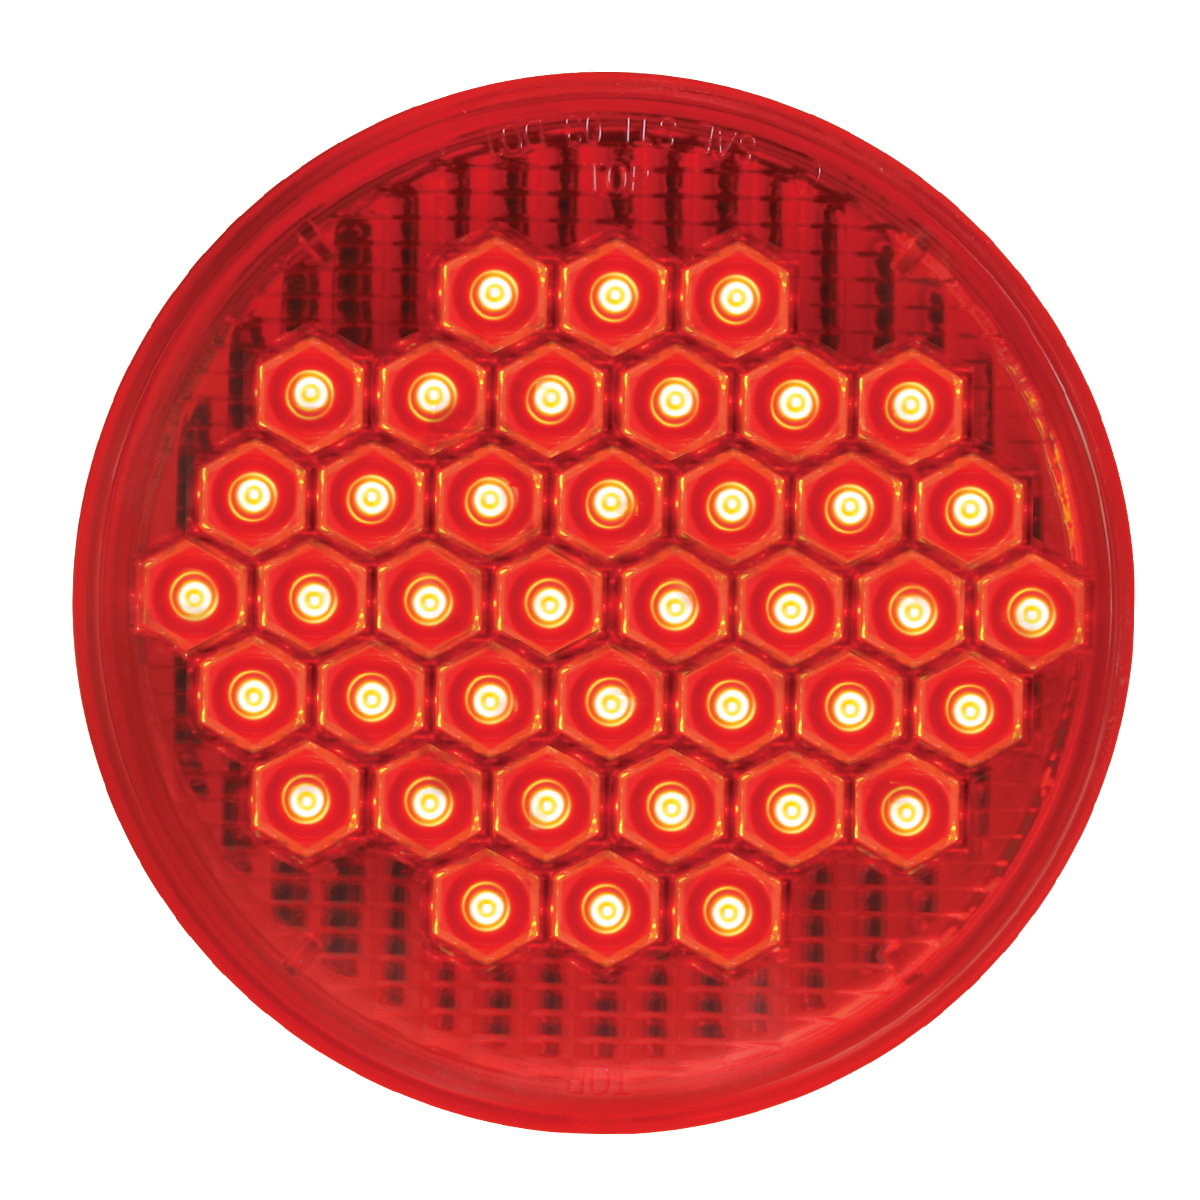 "#87700 4"" Round High Count LED Flat Red/Red Light"